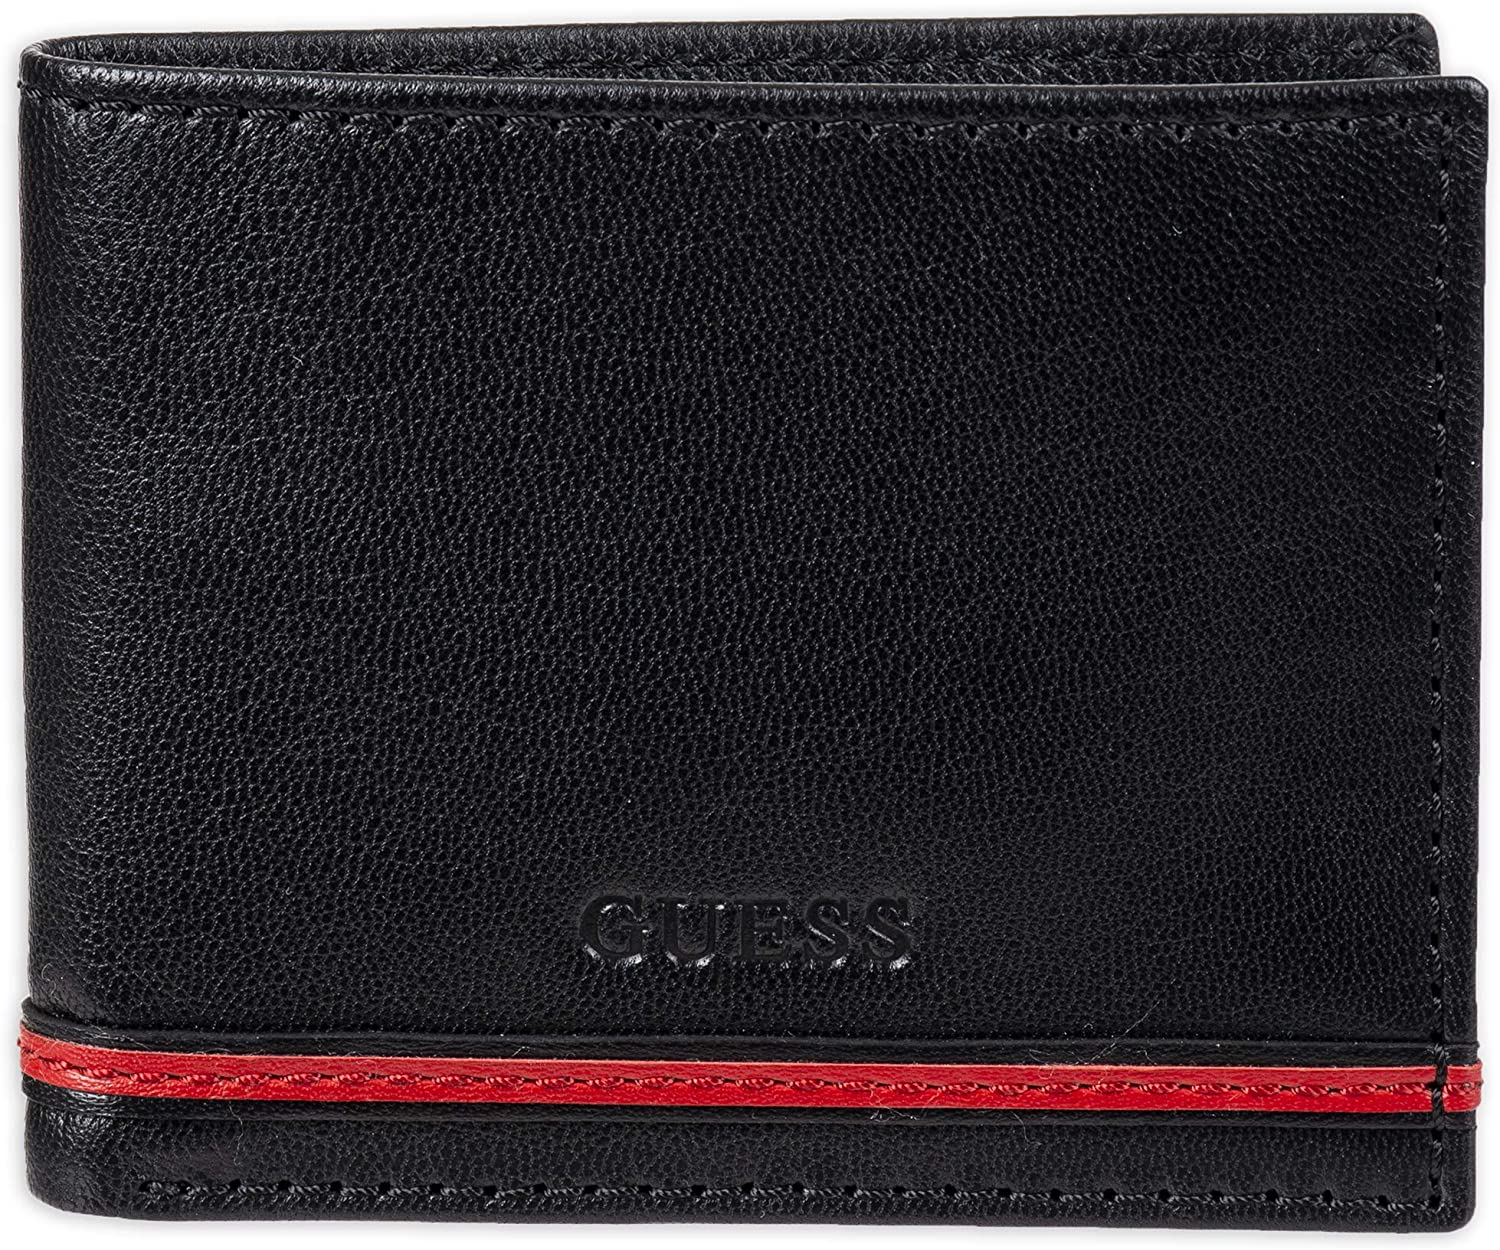 Popular products GUESS Men's Genuine Free Shipping Leather Bifold Slim Wallet